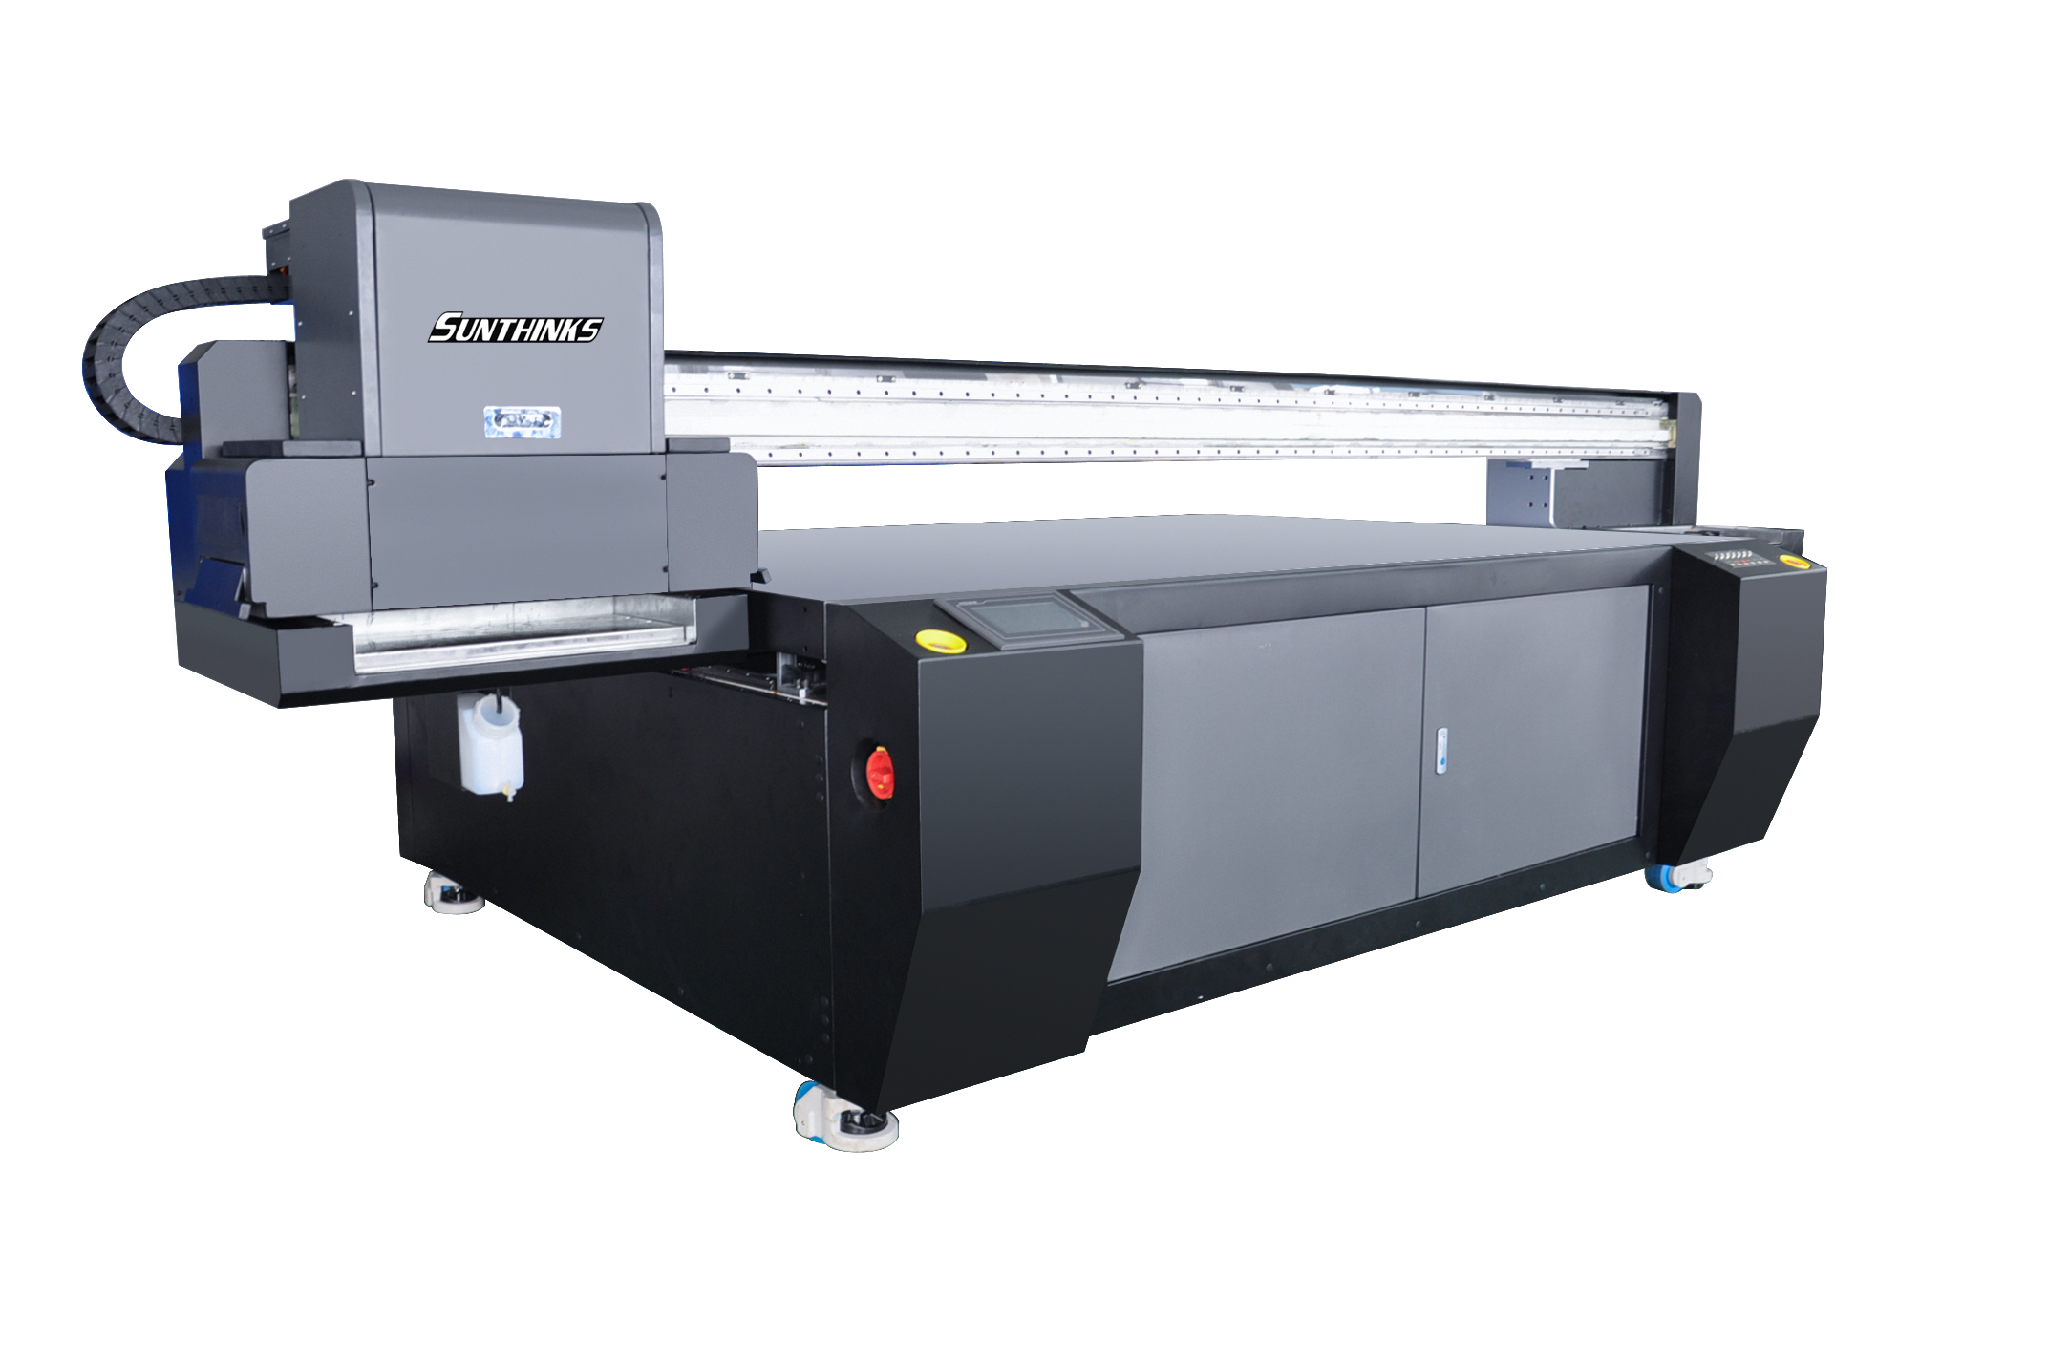 UV Fatbed Printer with Ricoh GH2220 heads 10